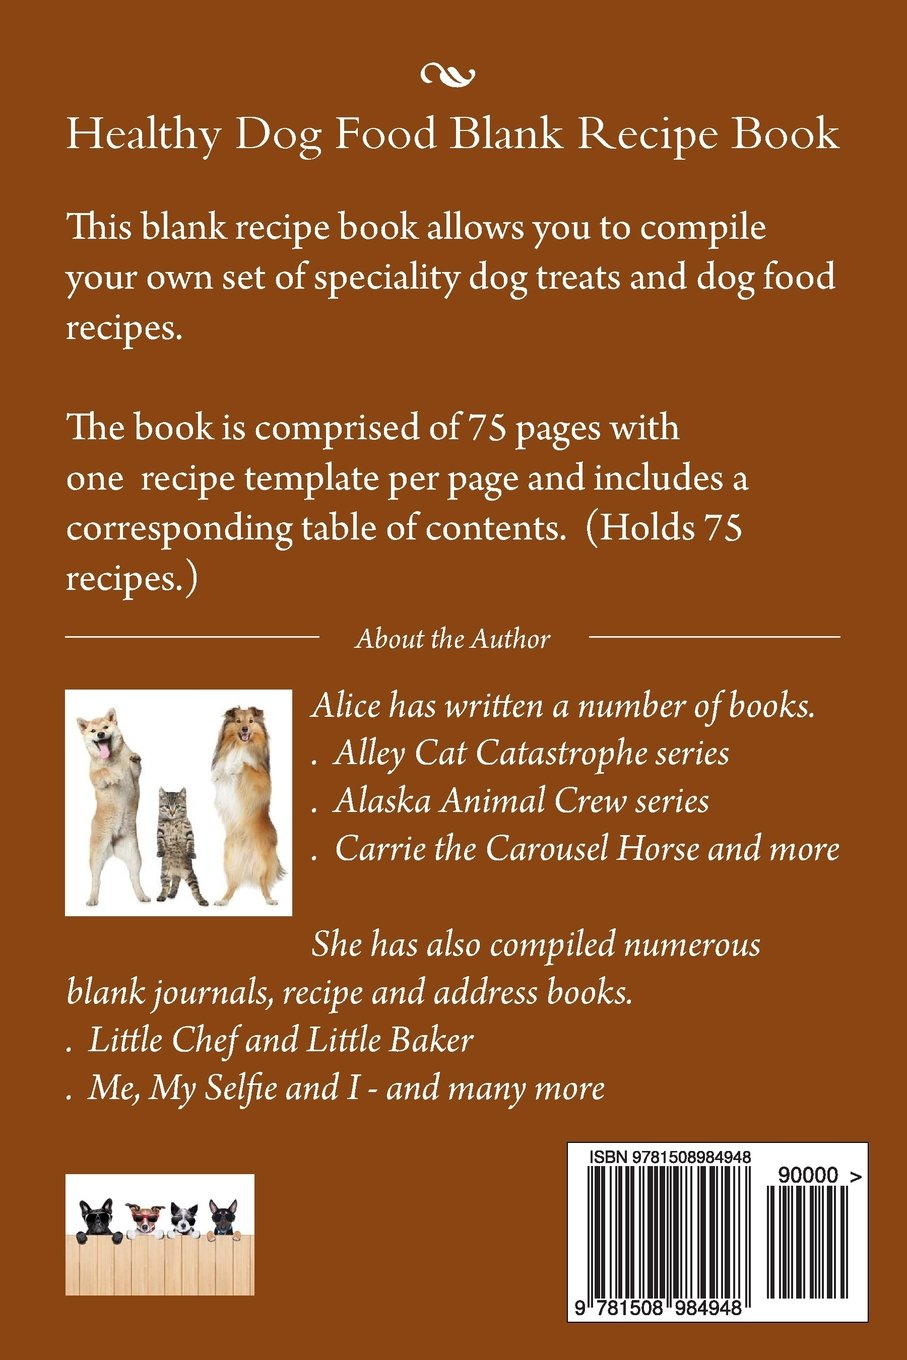 Healthy dog food blank recipe book raw baked natural biscuits healthy dog food blank recipe book raw baked natural biscuits or treats recipe books mrs alice e tidwel 9781508984948 amazon books forumfinder Gallery